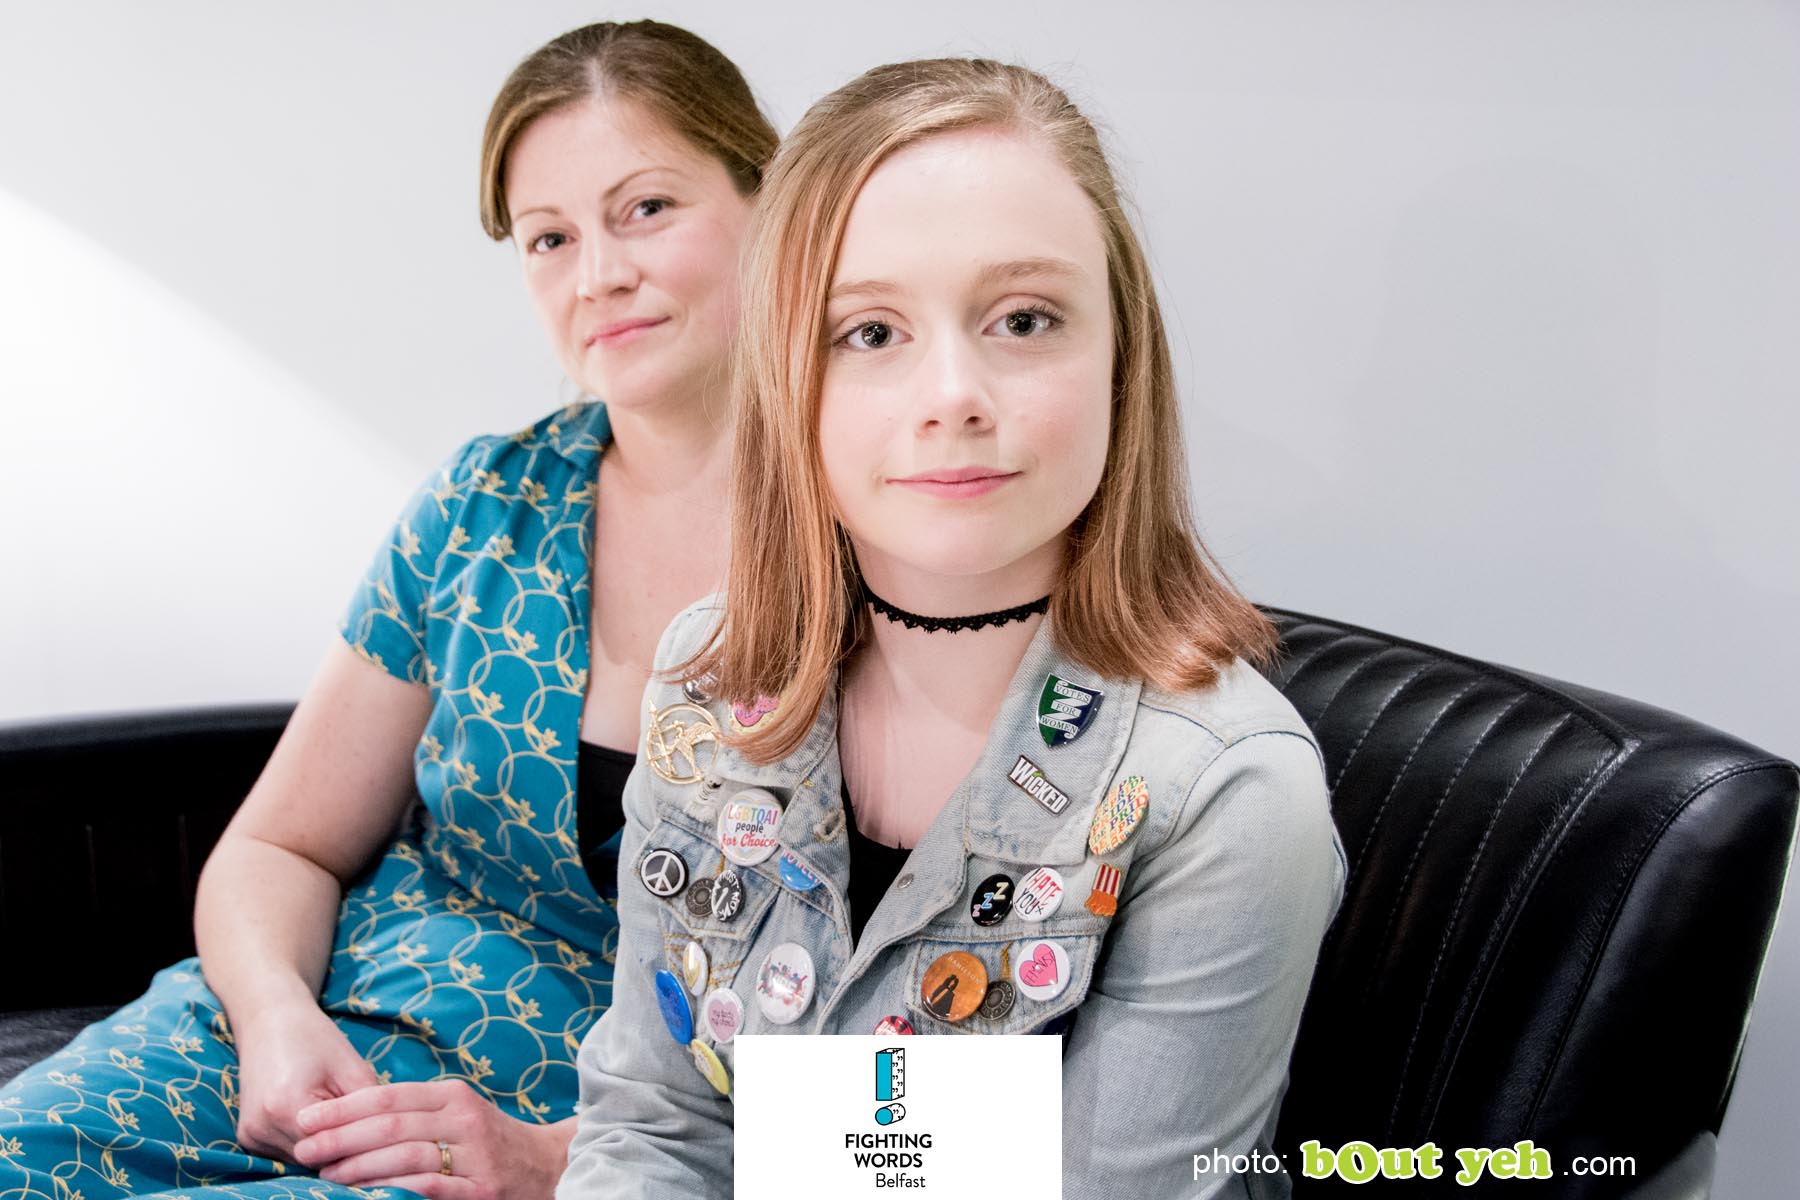 Image - Sophia and Kelly of Write Club by Bout yeh photographers Belfast - photo 6251